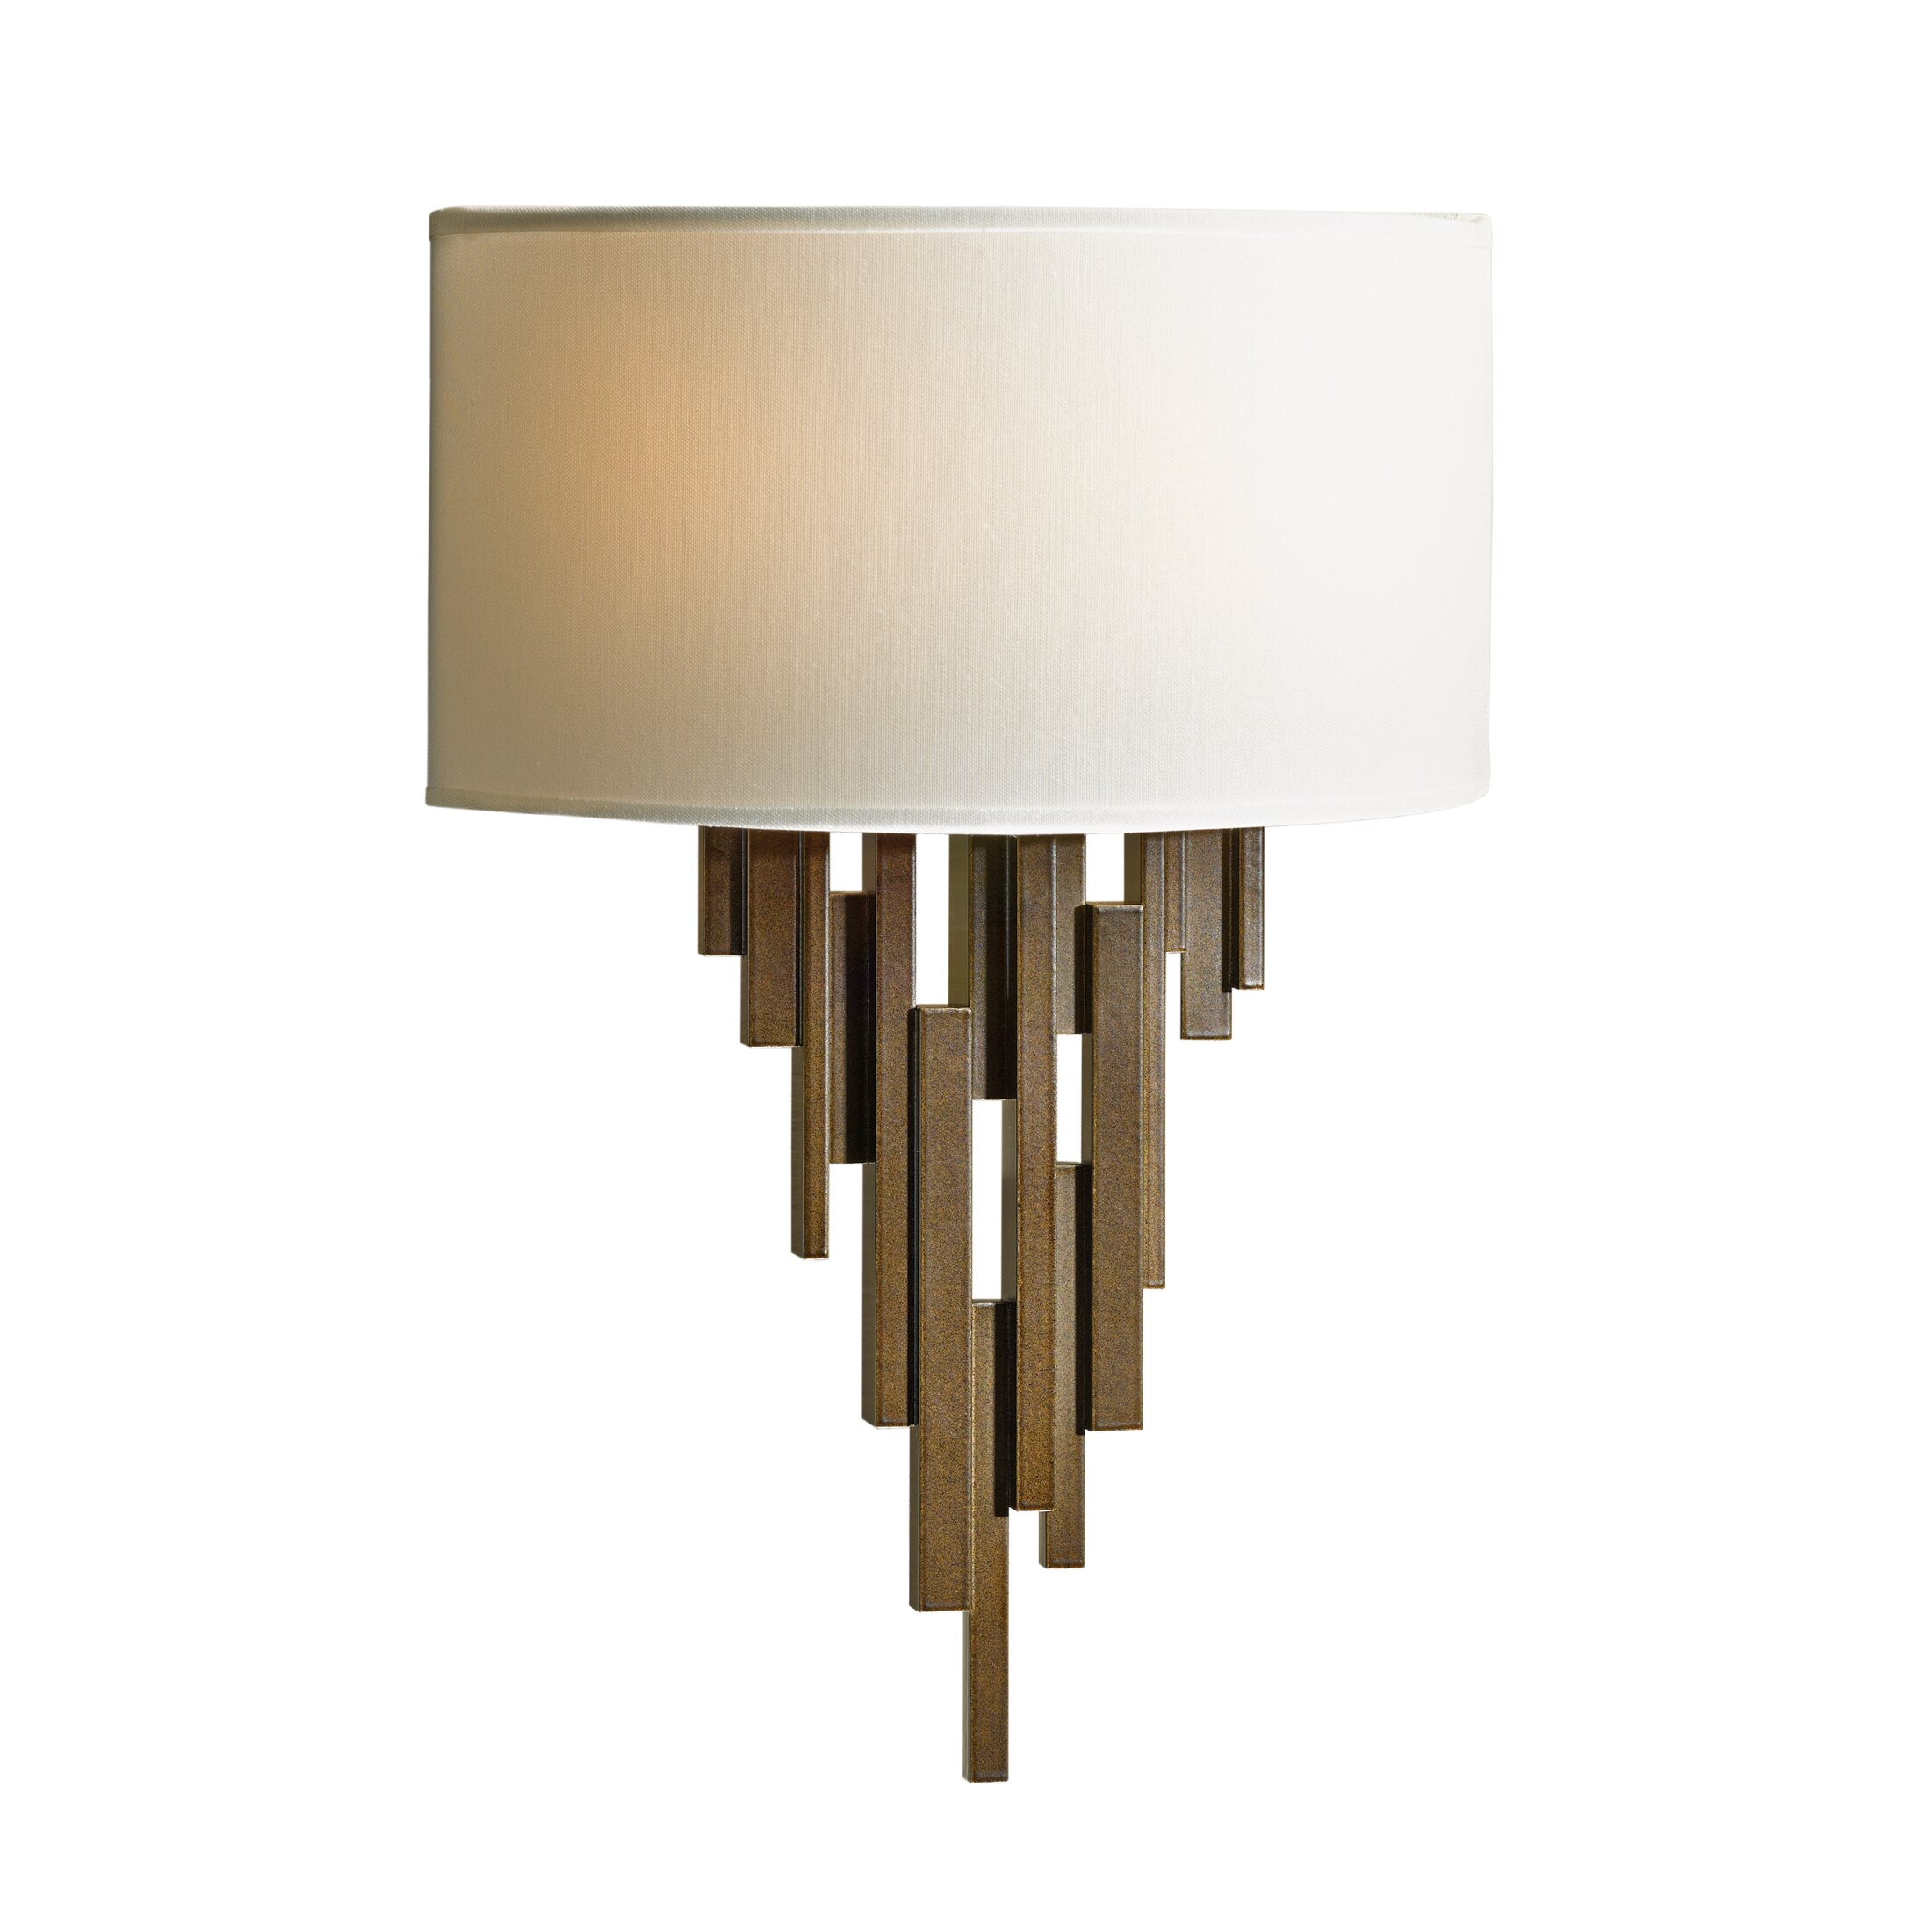 Wall Sconces 2 Lights : Hubbardton Forge Echelon 2 Light Wall Sconce & Reviews Wayfair